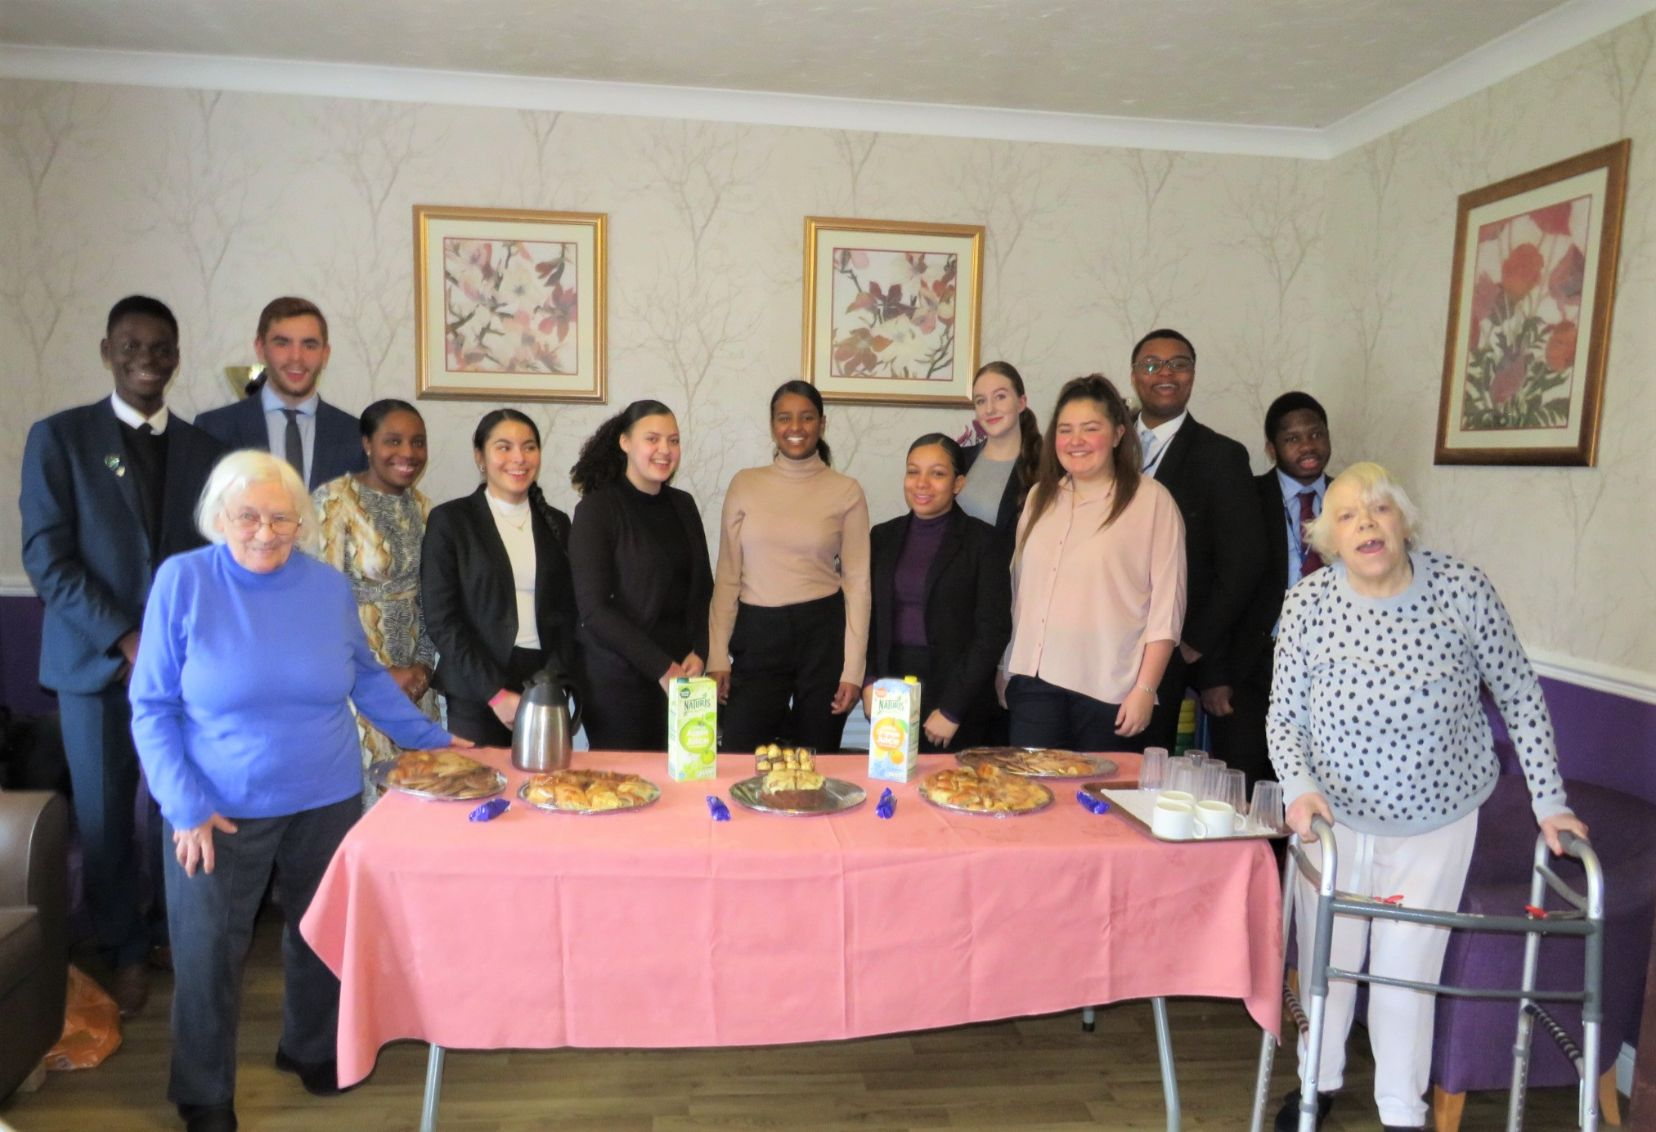 Uplands Care Home in Streatham host a coffee morning